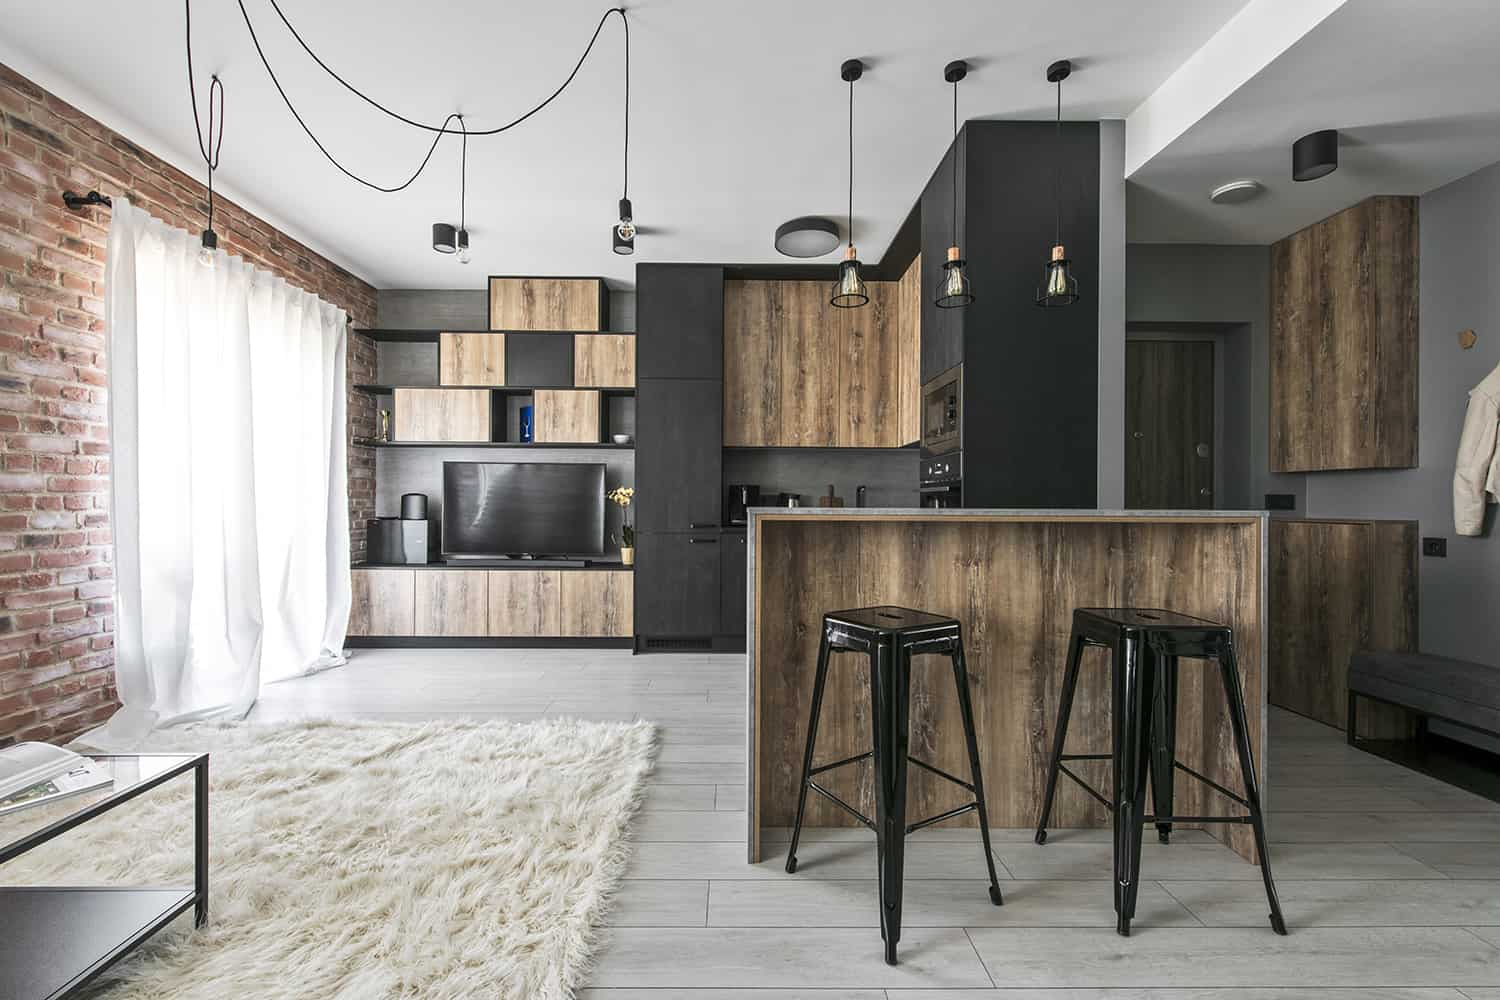 Small Industrial Apartment In Lithuania Gets An Inspiring